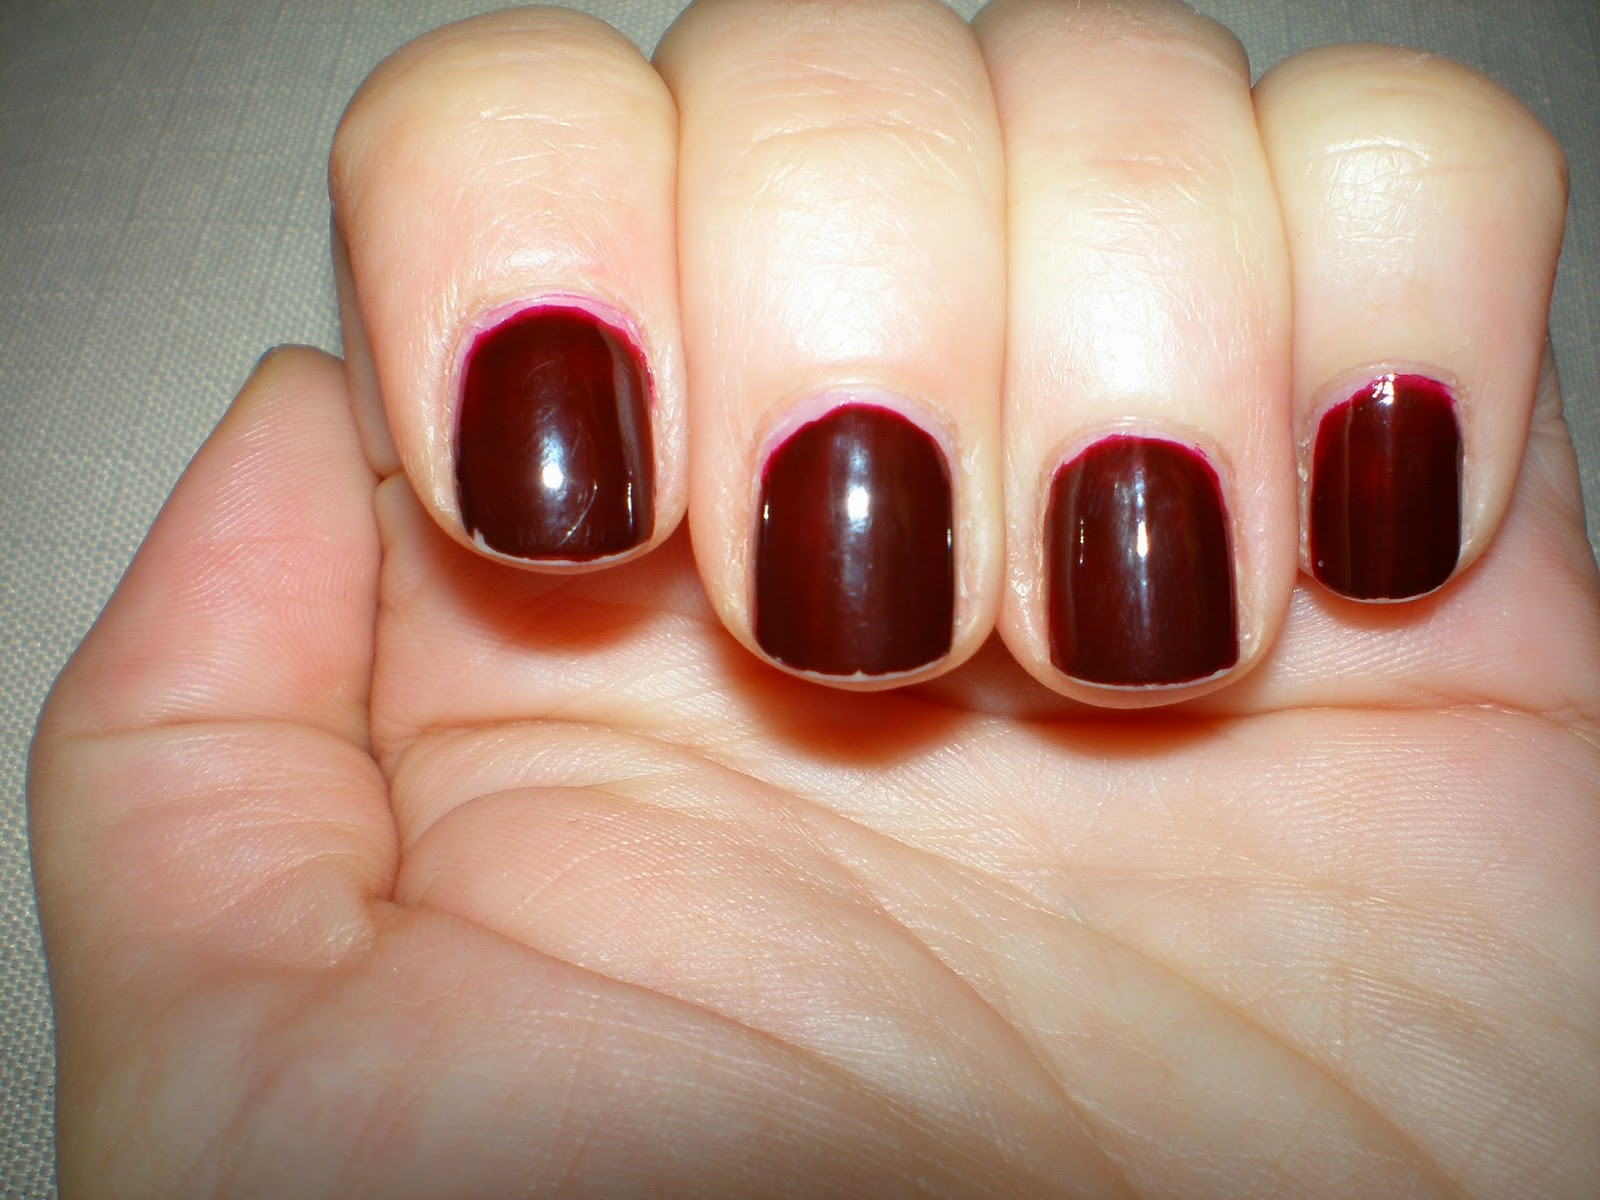 L'oreal Infallible Gel Nail polish after 8 days